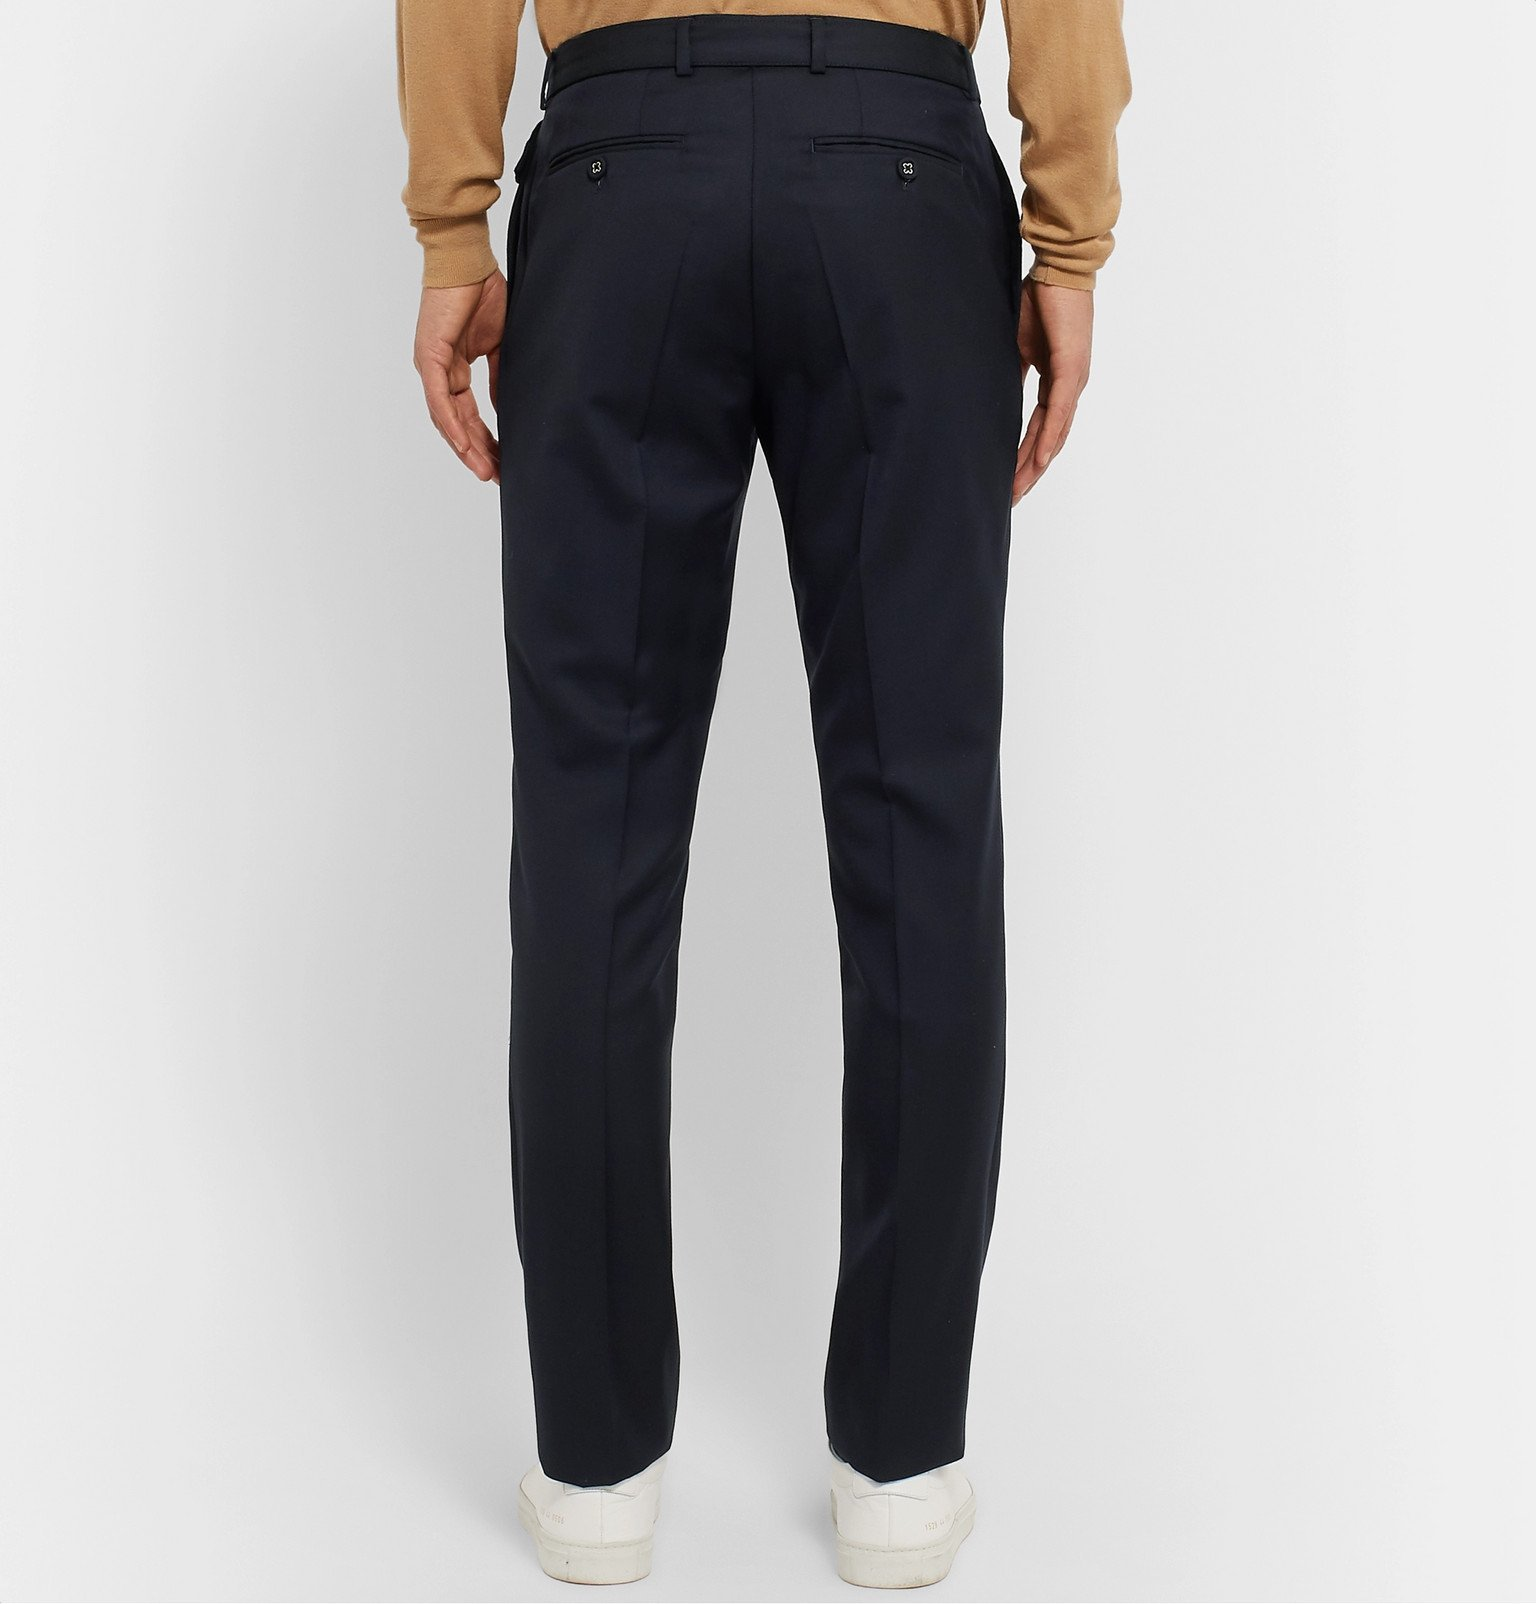 Officine Generale - Navy Paul Slim-Fit Belted Super 120s Wool Suit Trousers - Blue